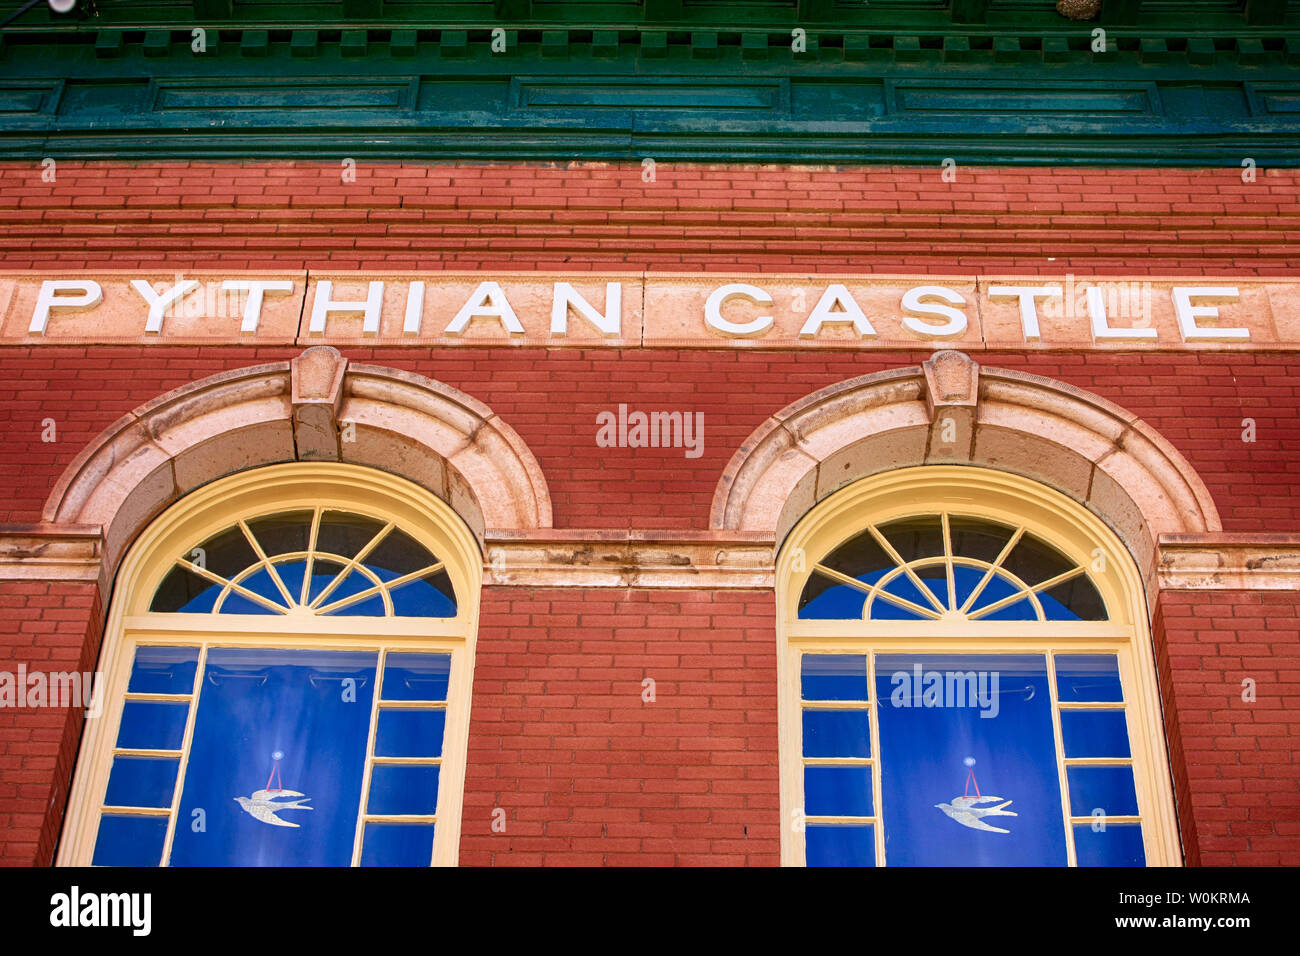 The Pythian Castle building in historic Bisbee AZ. Once a secret society lodge, now newly restored into apartments Stock Photo